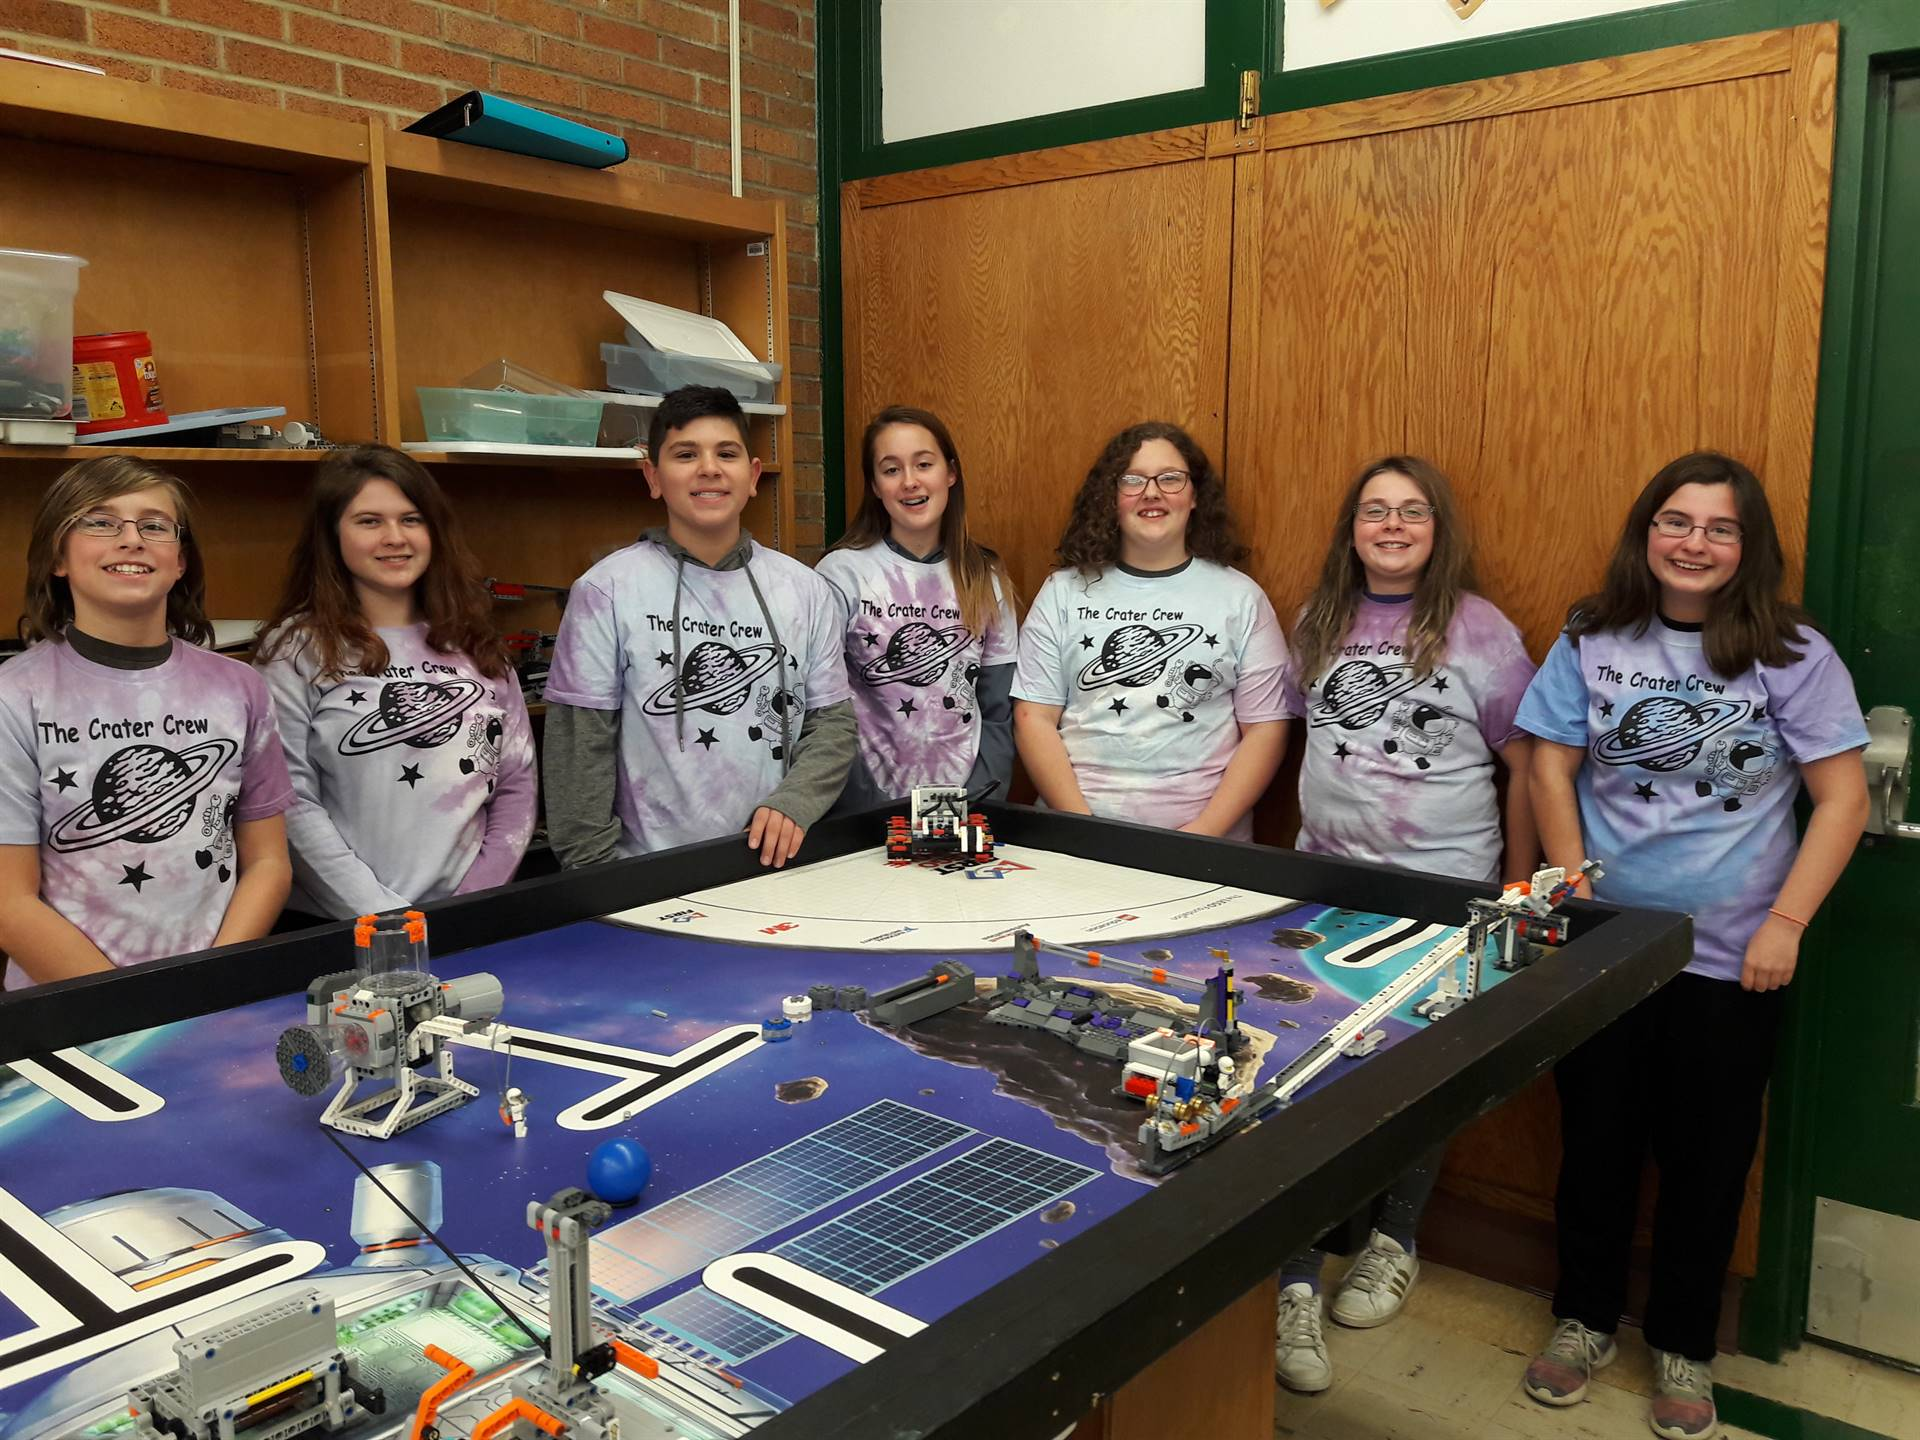 FIRST Lego League Team The Crater Crew